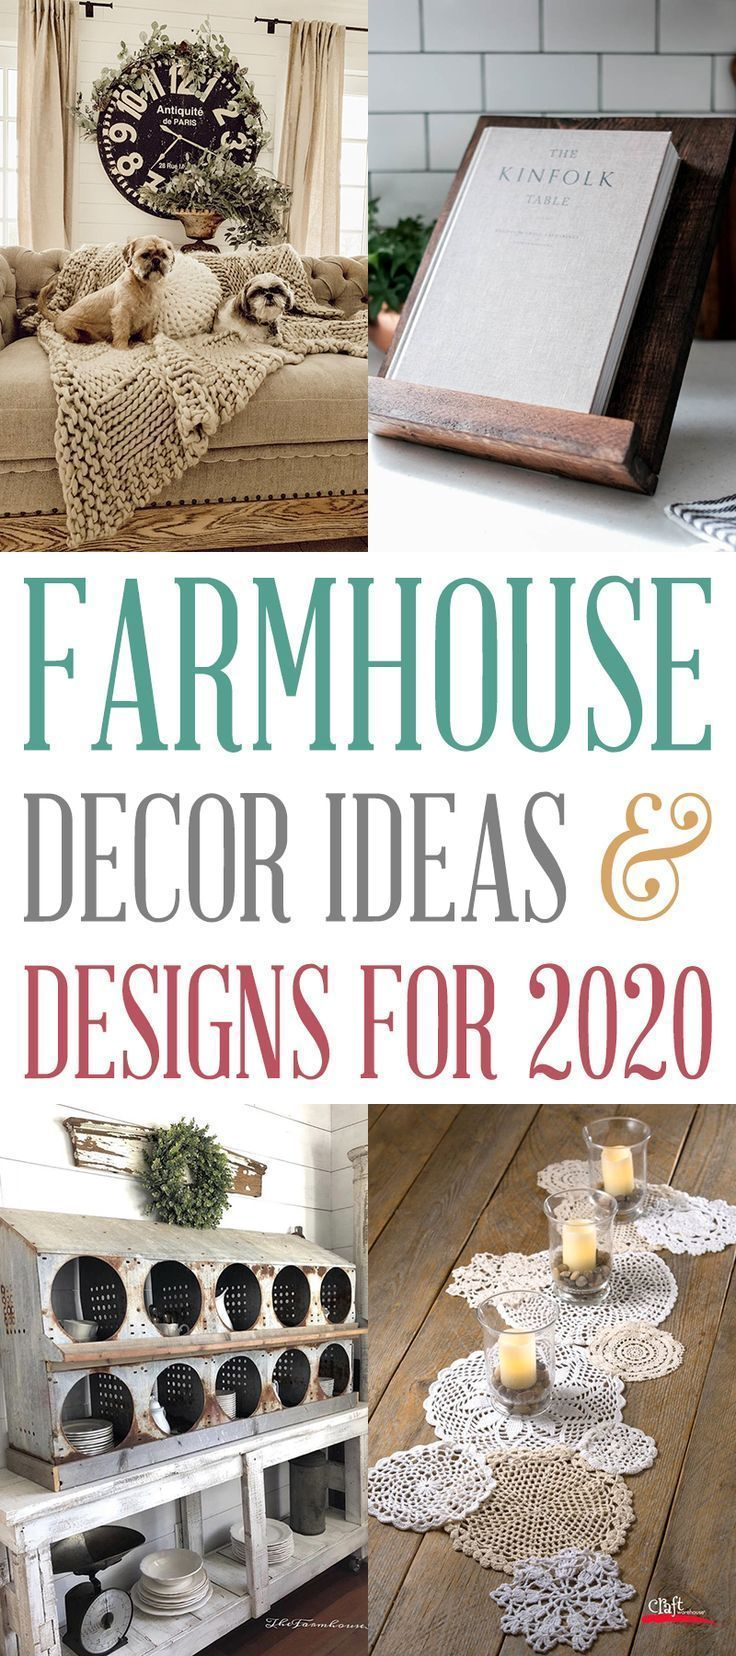 Farmhouse Decor Ideas and Designs for 2020 The Cottage